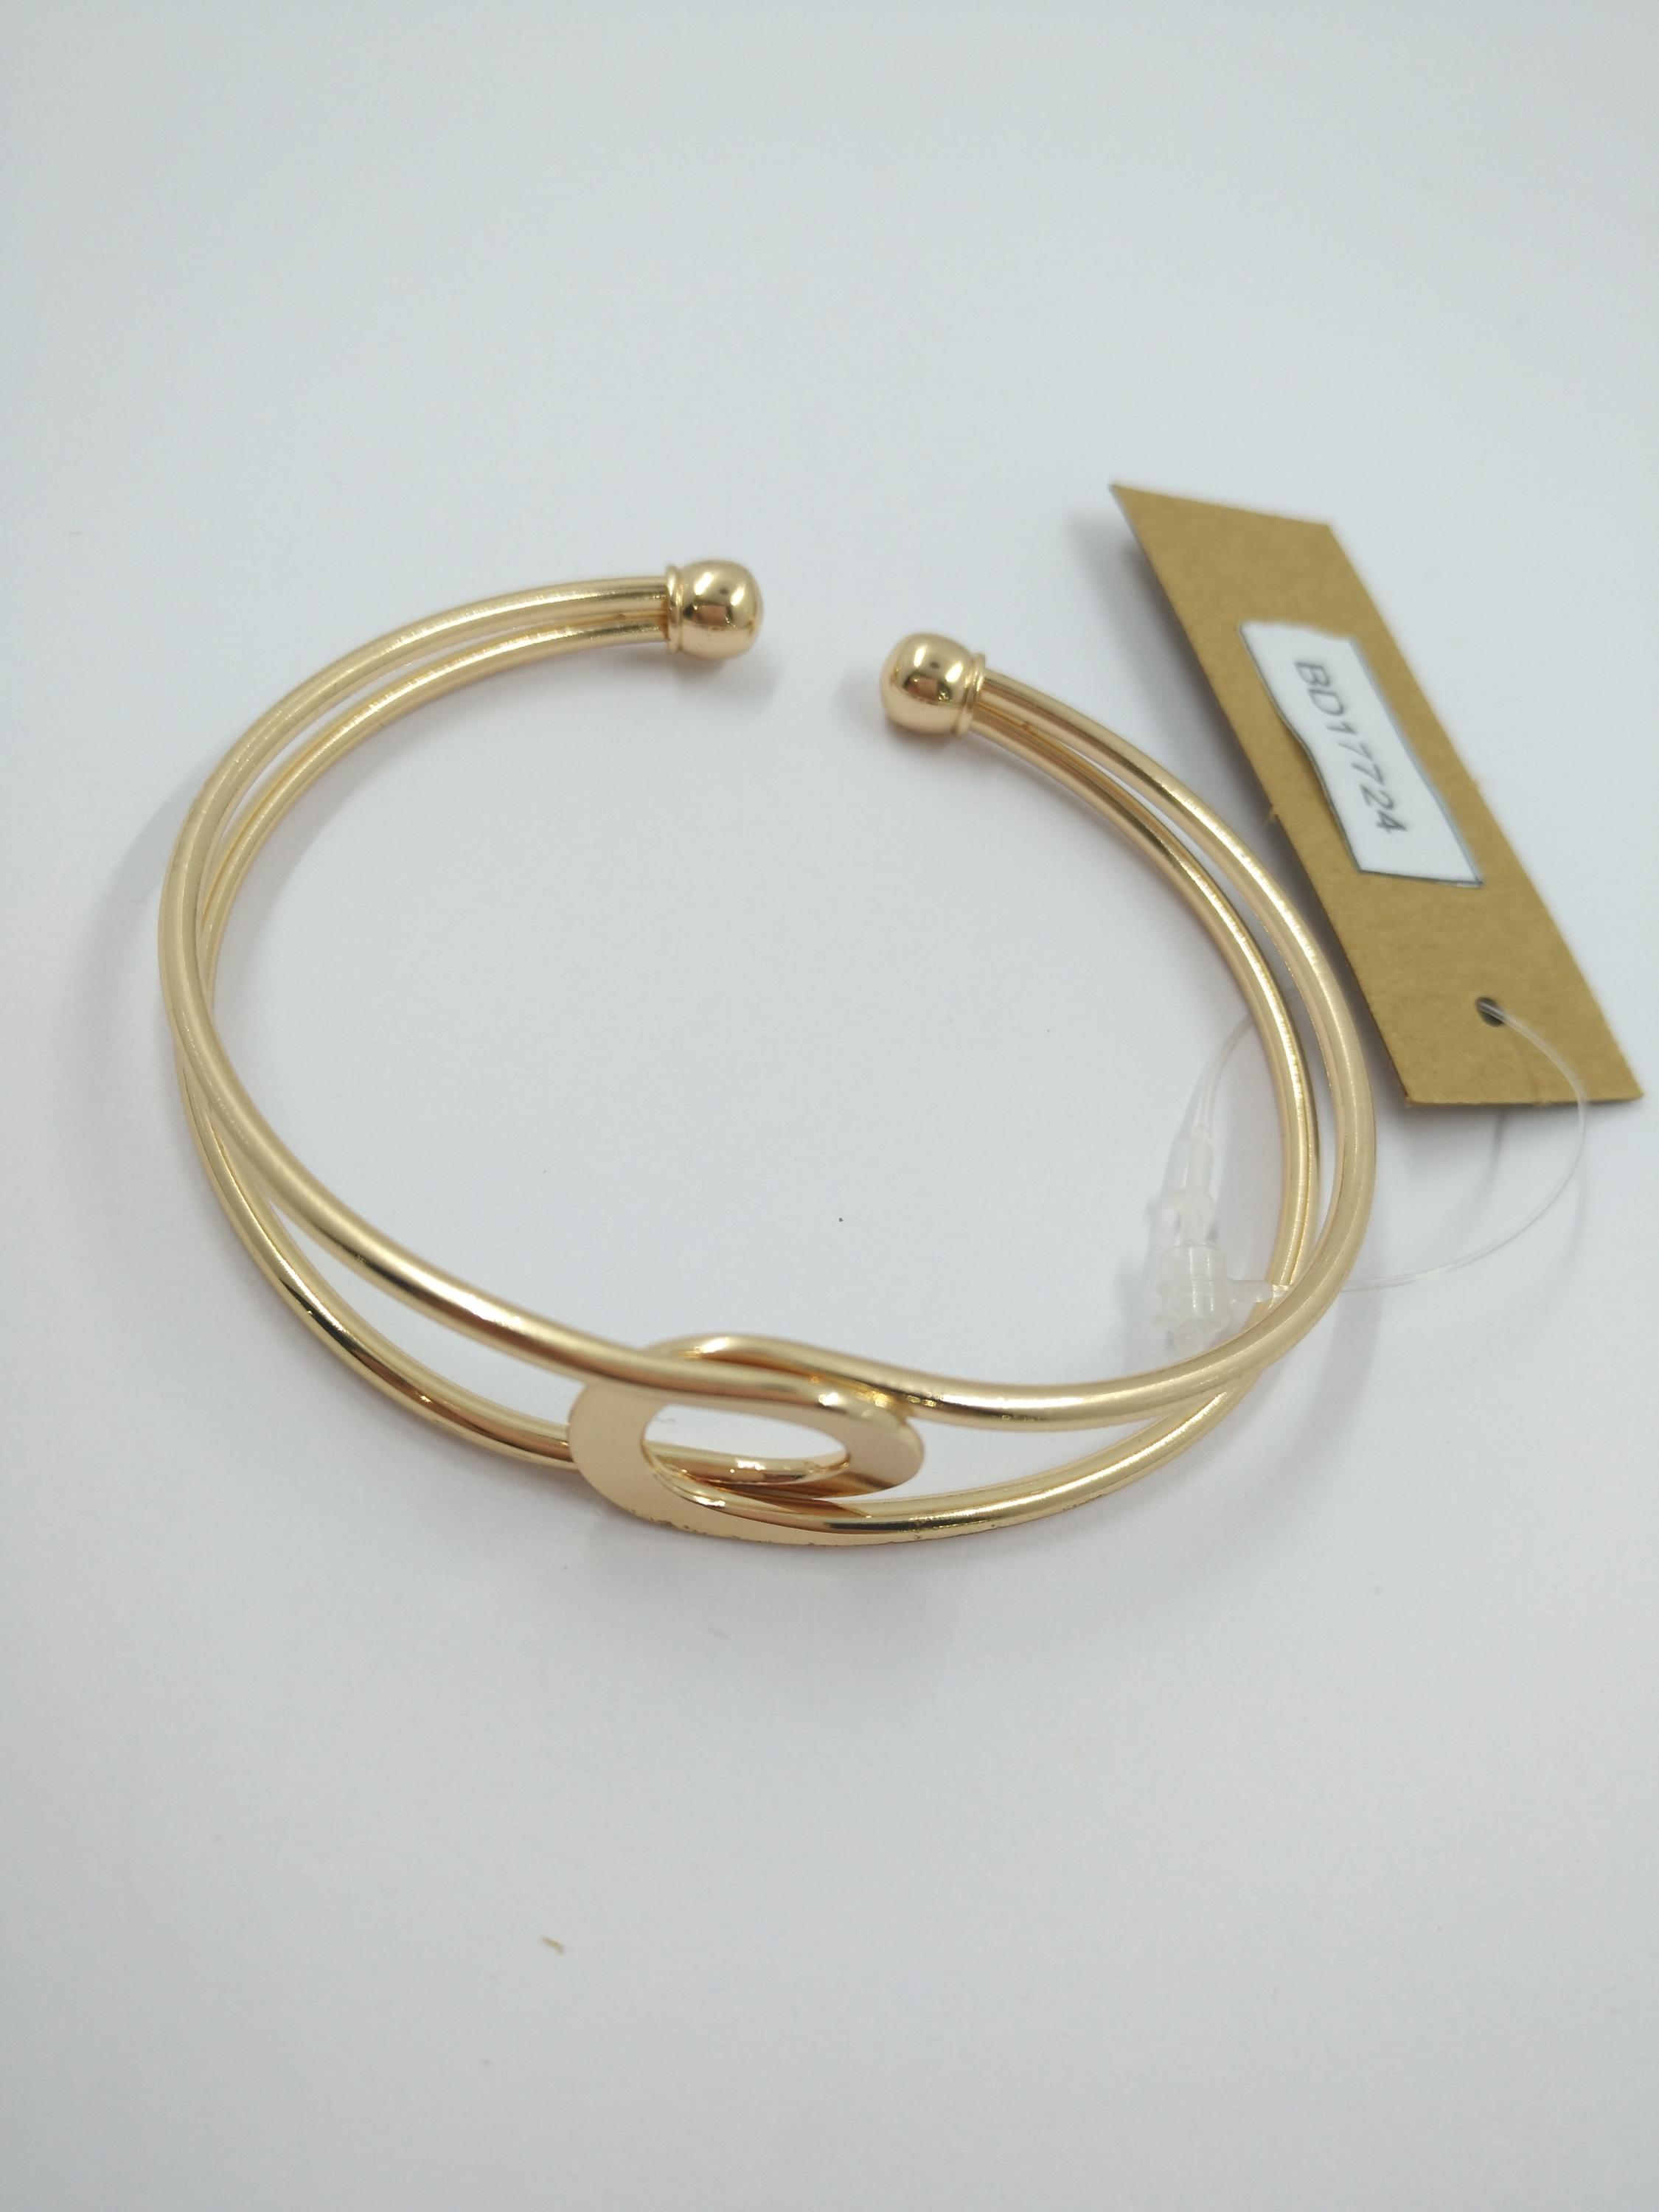 alex love because i of rose product stack and ani set jewelry gold charm you bangles